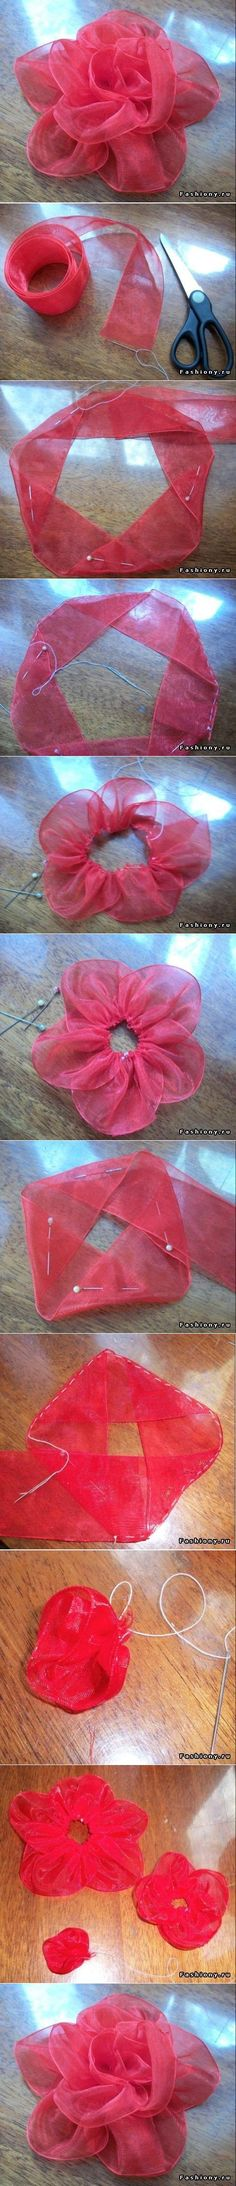 DIY Ribbon Tape Flower Tutorial in pictures Ribbon Art, Diy Ribbon, Fabric Ribbon, Ribbon Crafts, Flower Crafts, Fabric Crafts, Sewing Crafts, Diy Crafts, Ribbon Rose